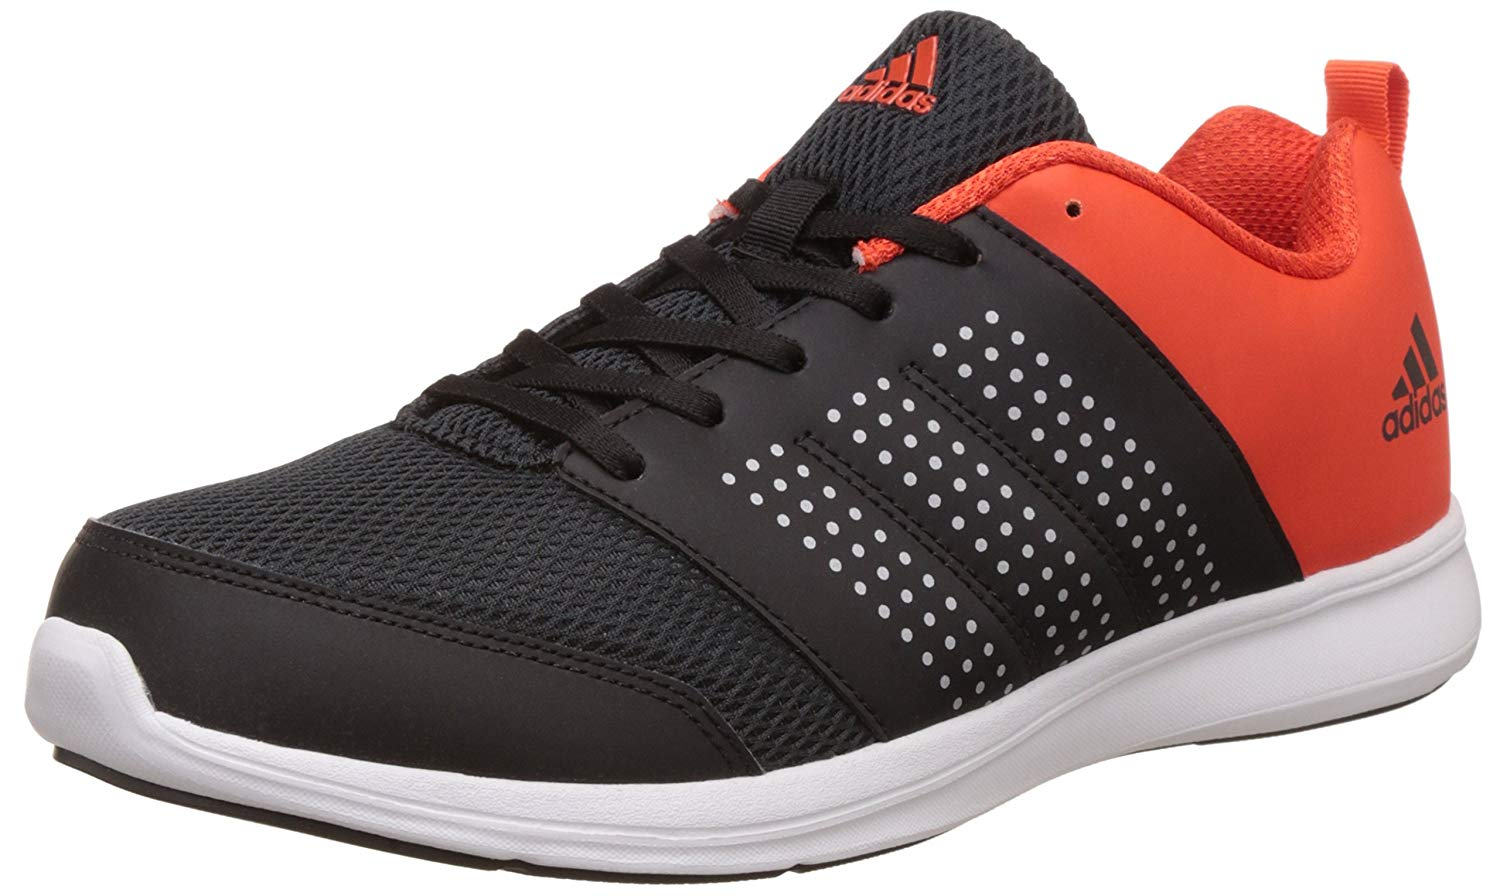 a954b9c338d6 Adidas Sports Shoes Price List in India 25 April 2019